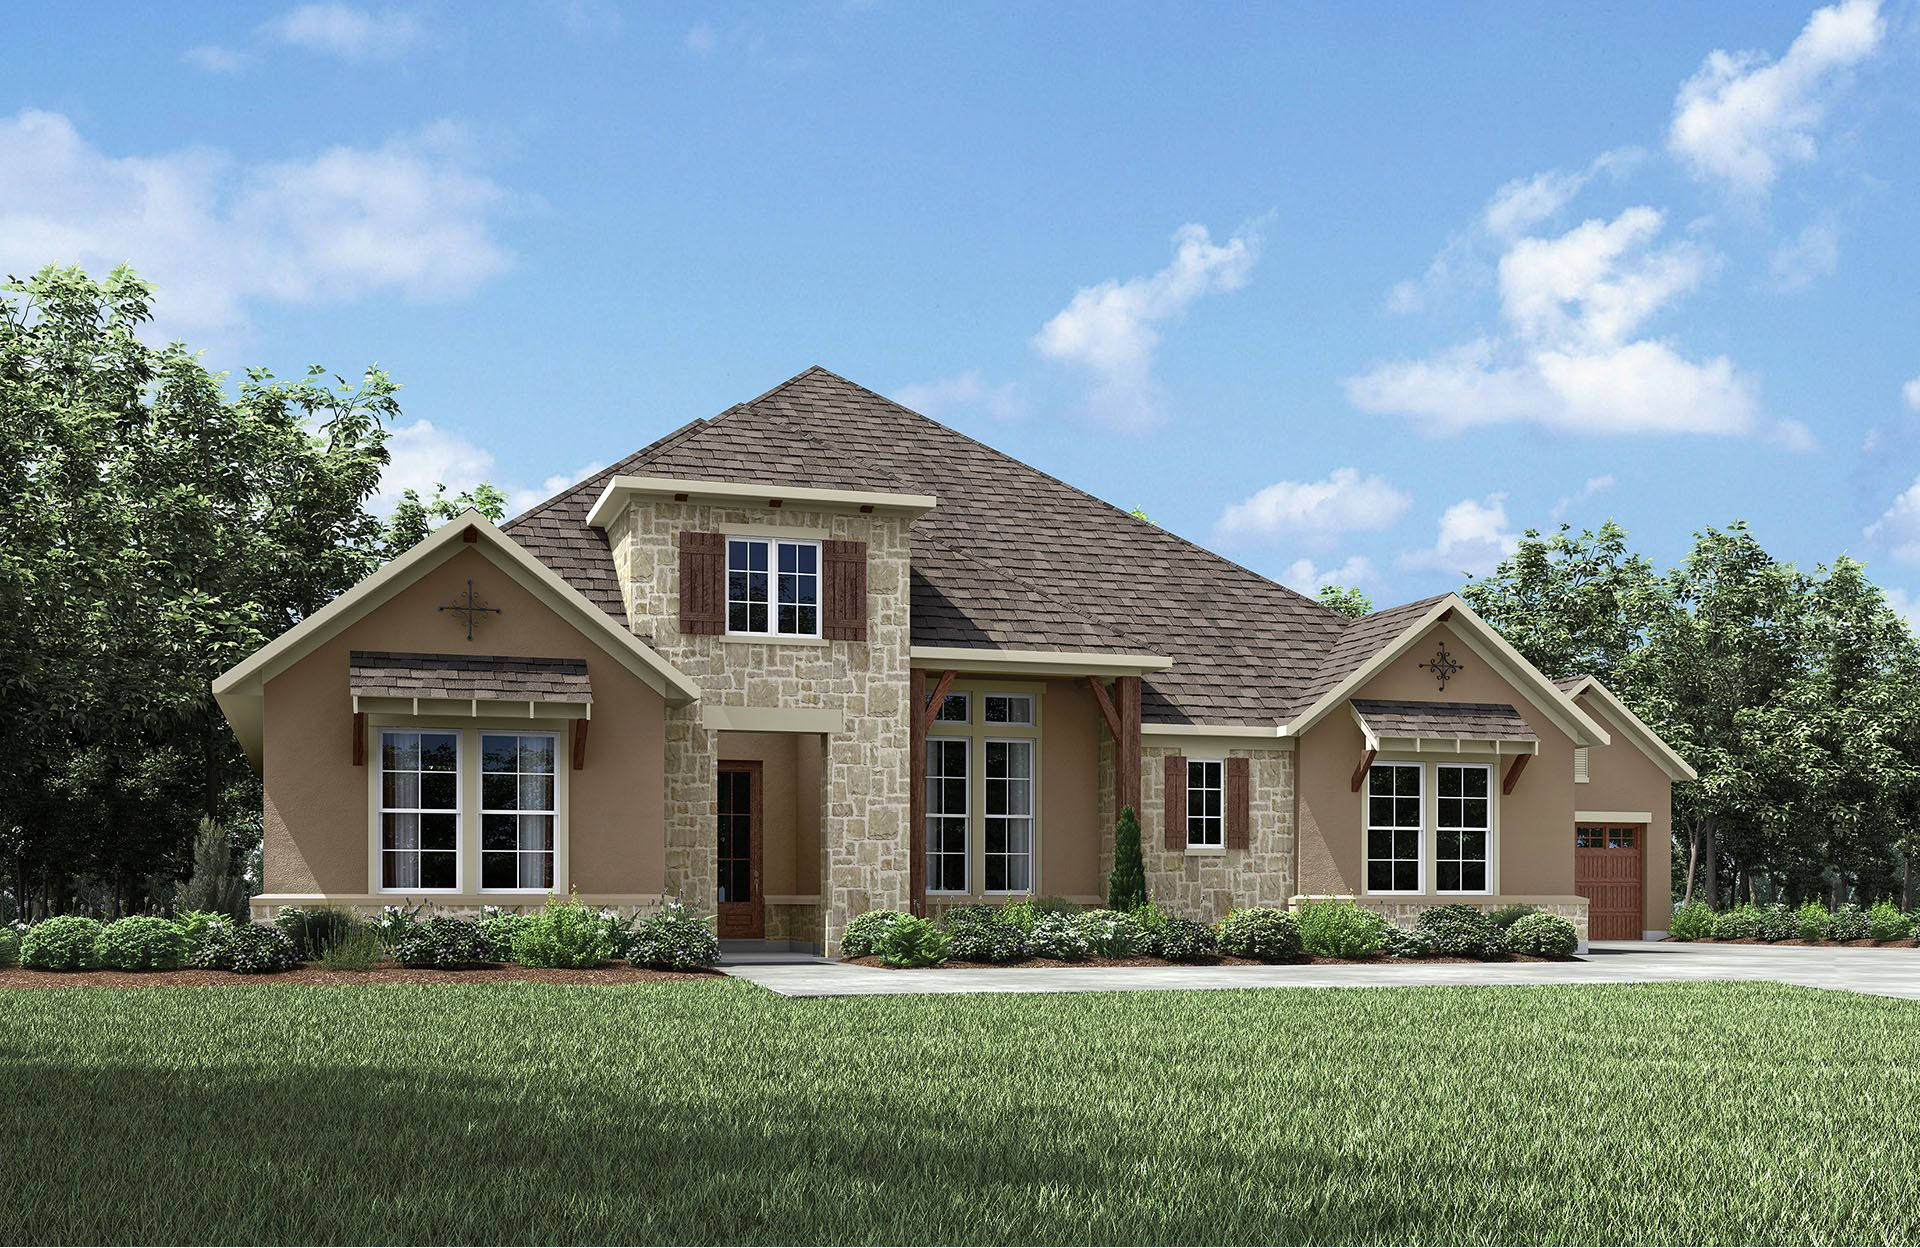 Single Family for Sale at Breezy Hill - Castella Ii 795 Featherstone Rockwall, Texas 75087 United States